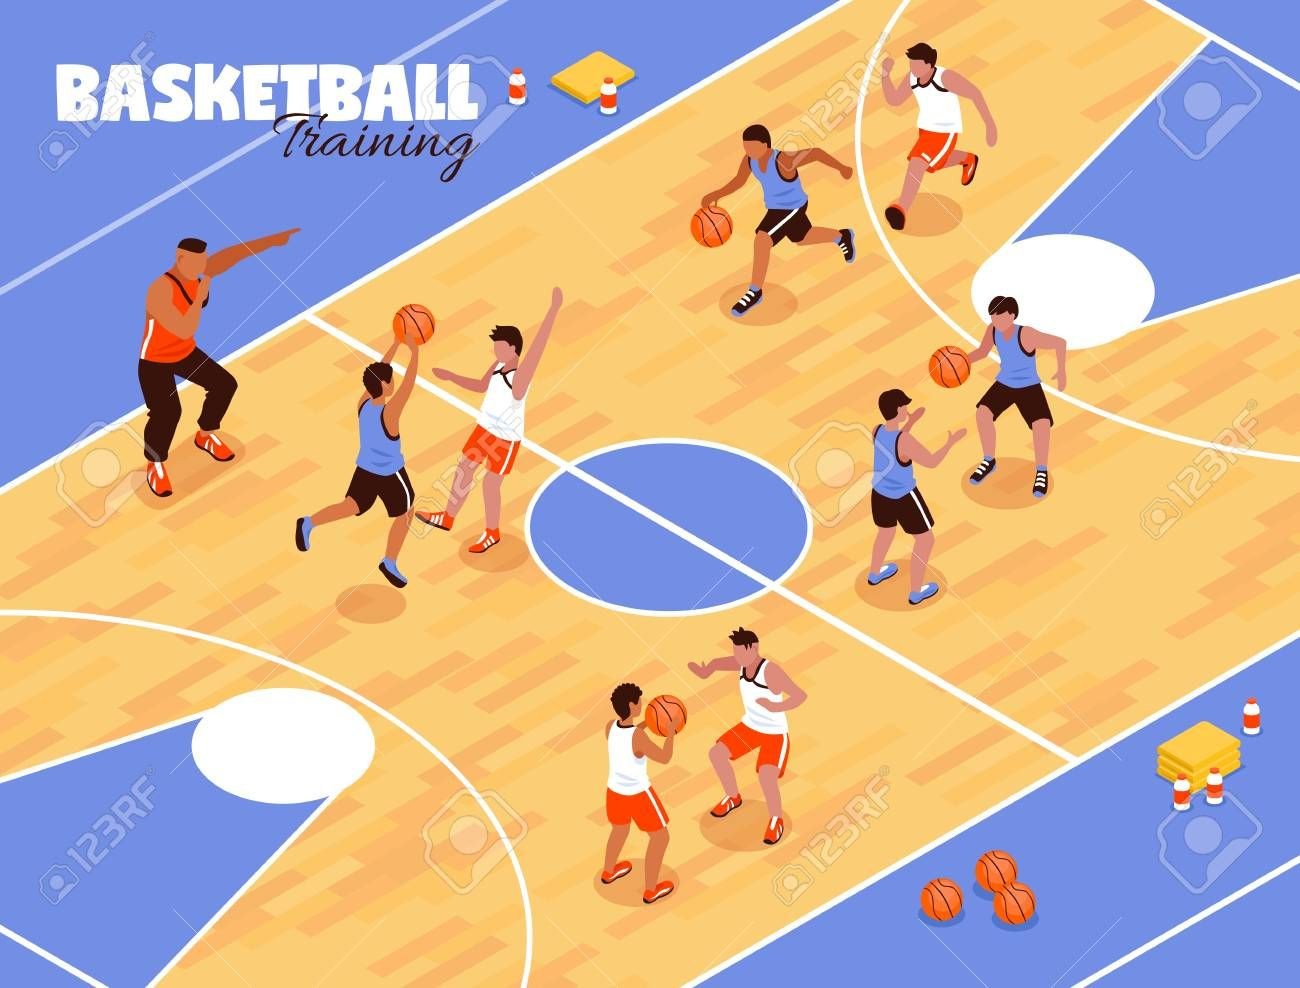 Isometric School Sport Kids Team Basketball Background Composition With View Of Basketball Court And Basketball Teams Basketball Background Basketball Training